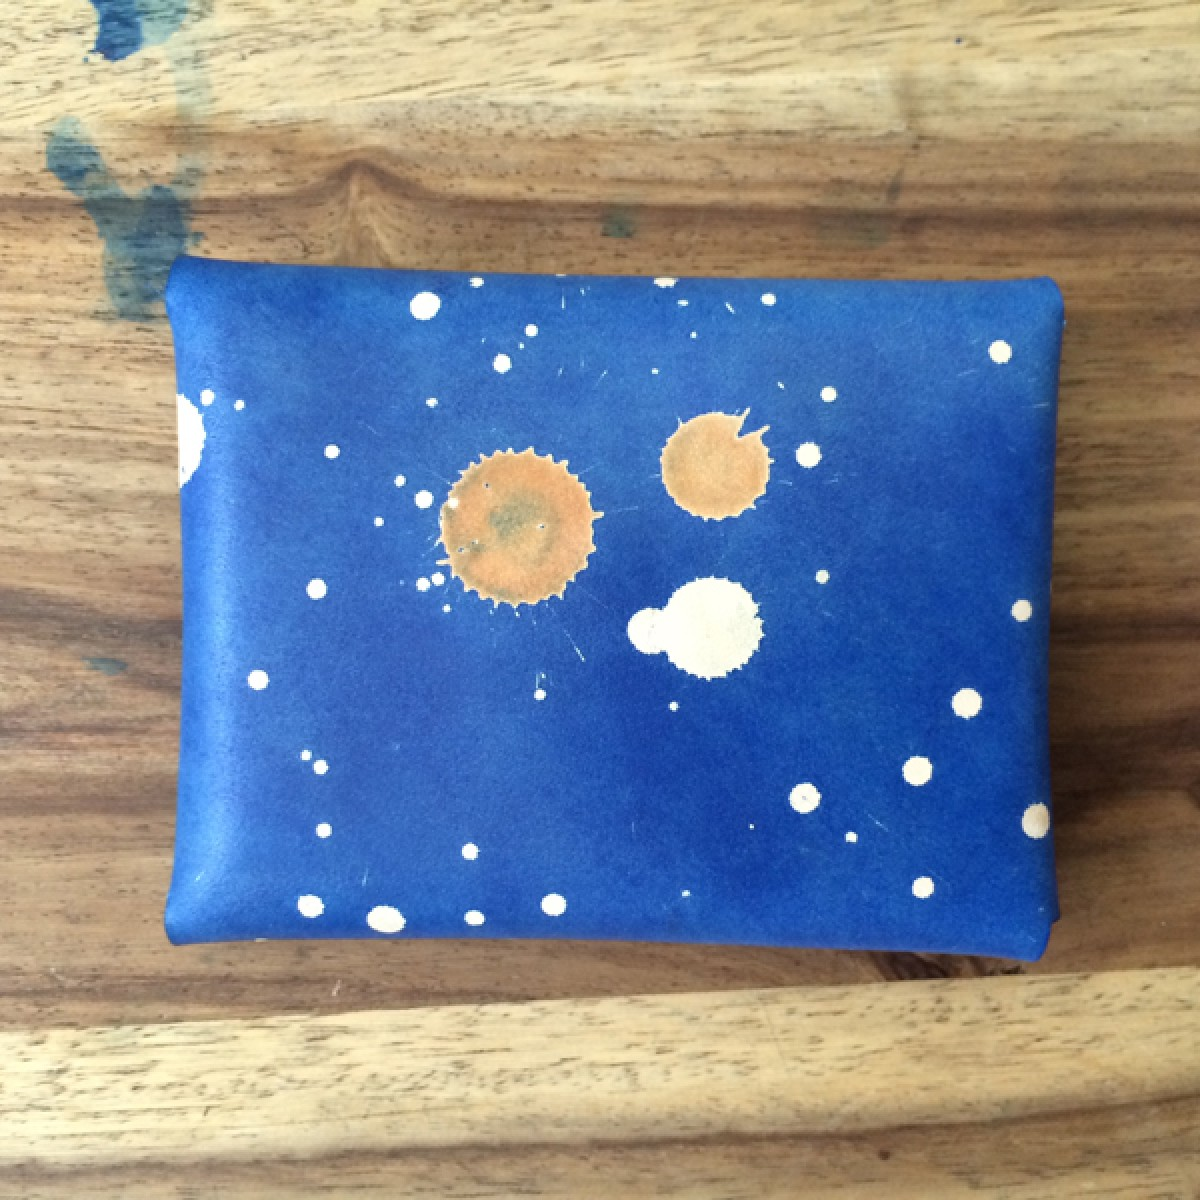 STUDIO MUNIQUE space blue card holder